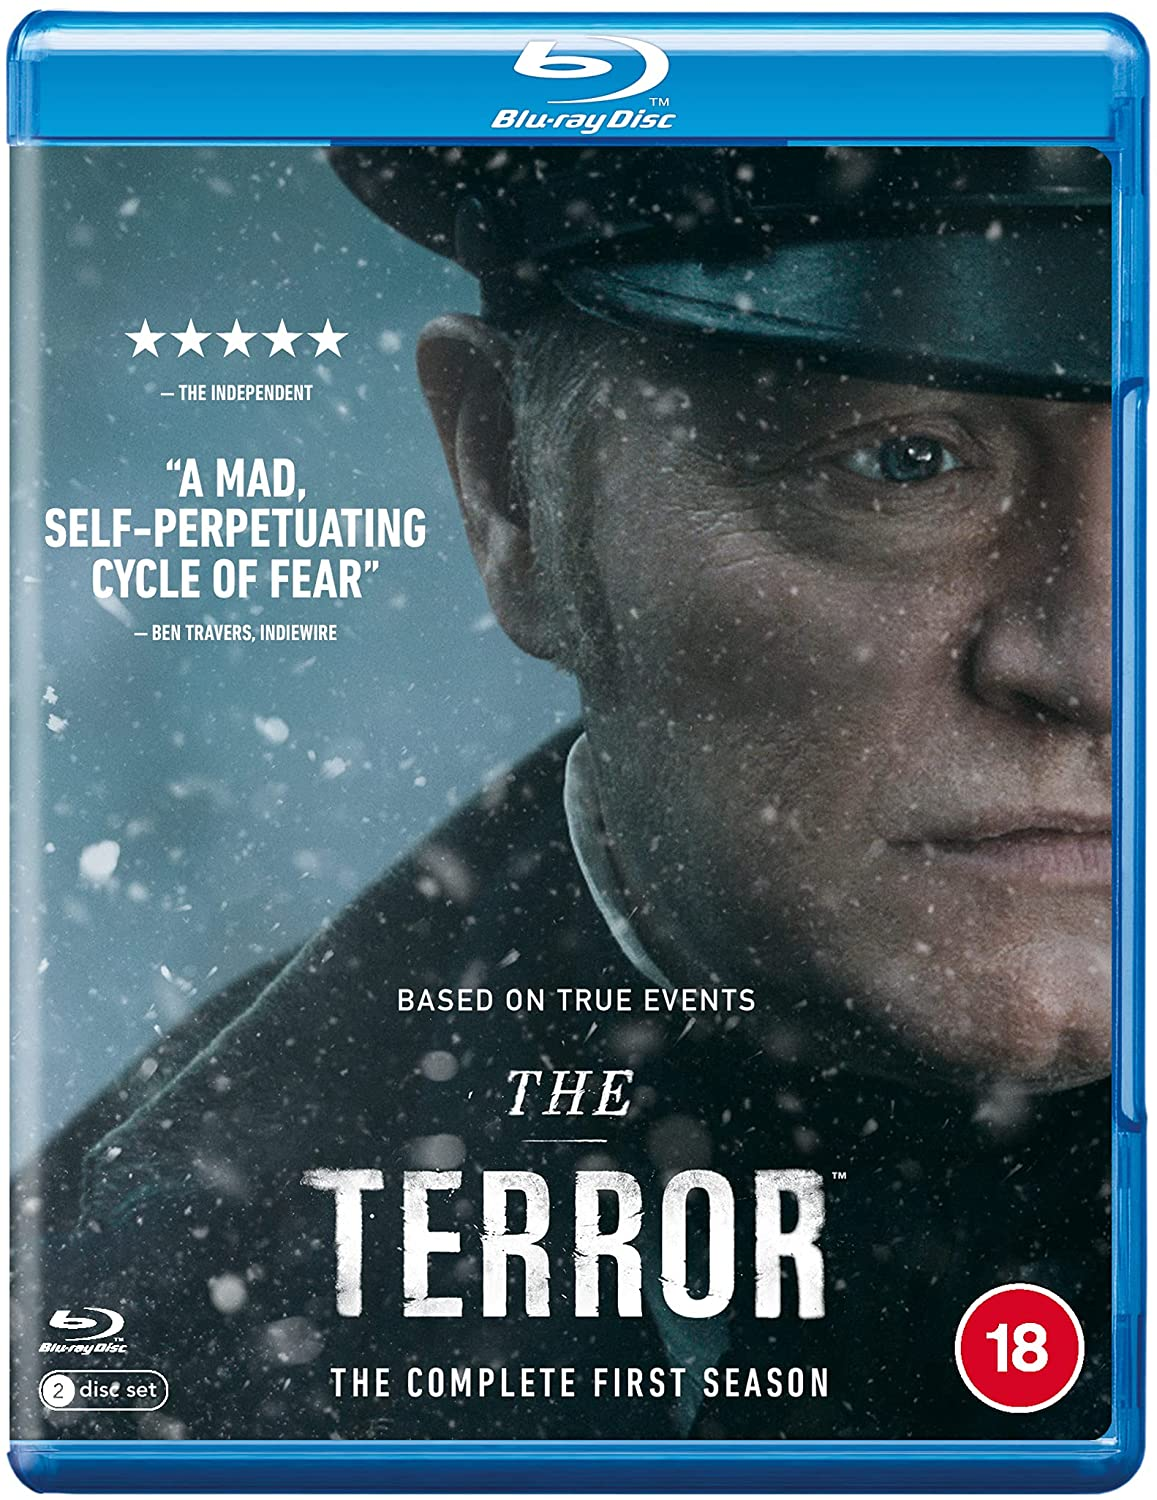 boom competitions -  win The Terror on Blu-ray